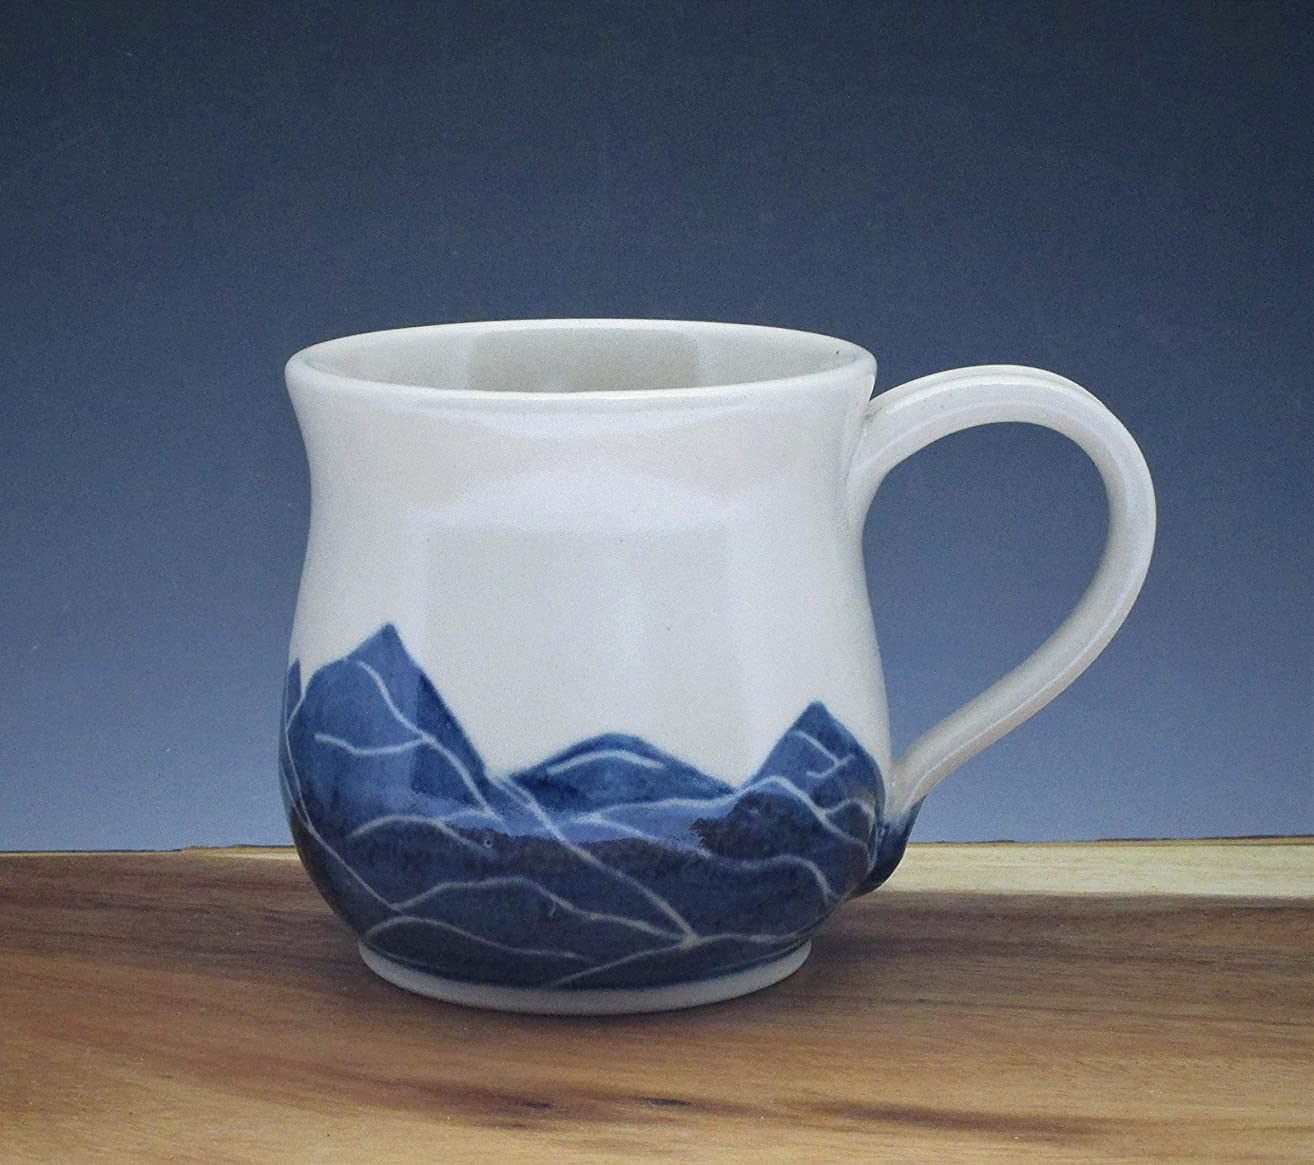 Pottery Mug, Porcelain Cup Handmade and Handpainted with Mountain Pattern